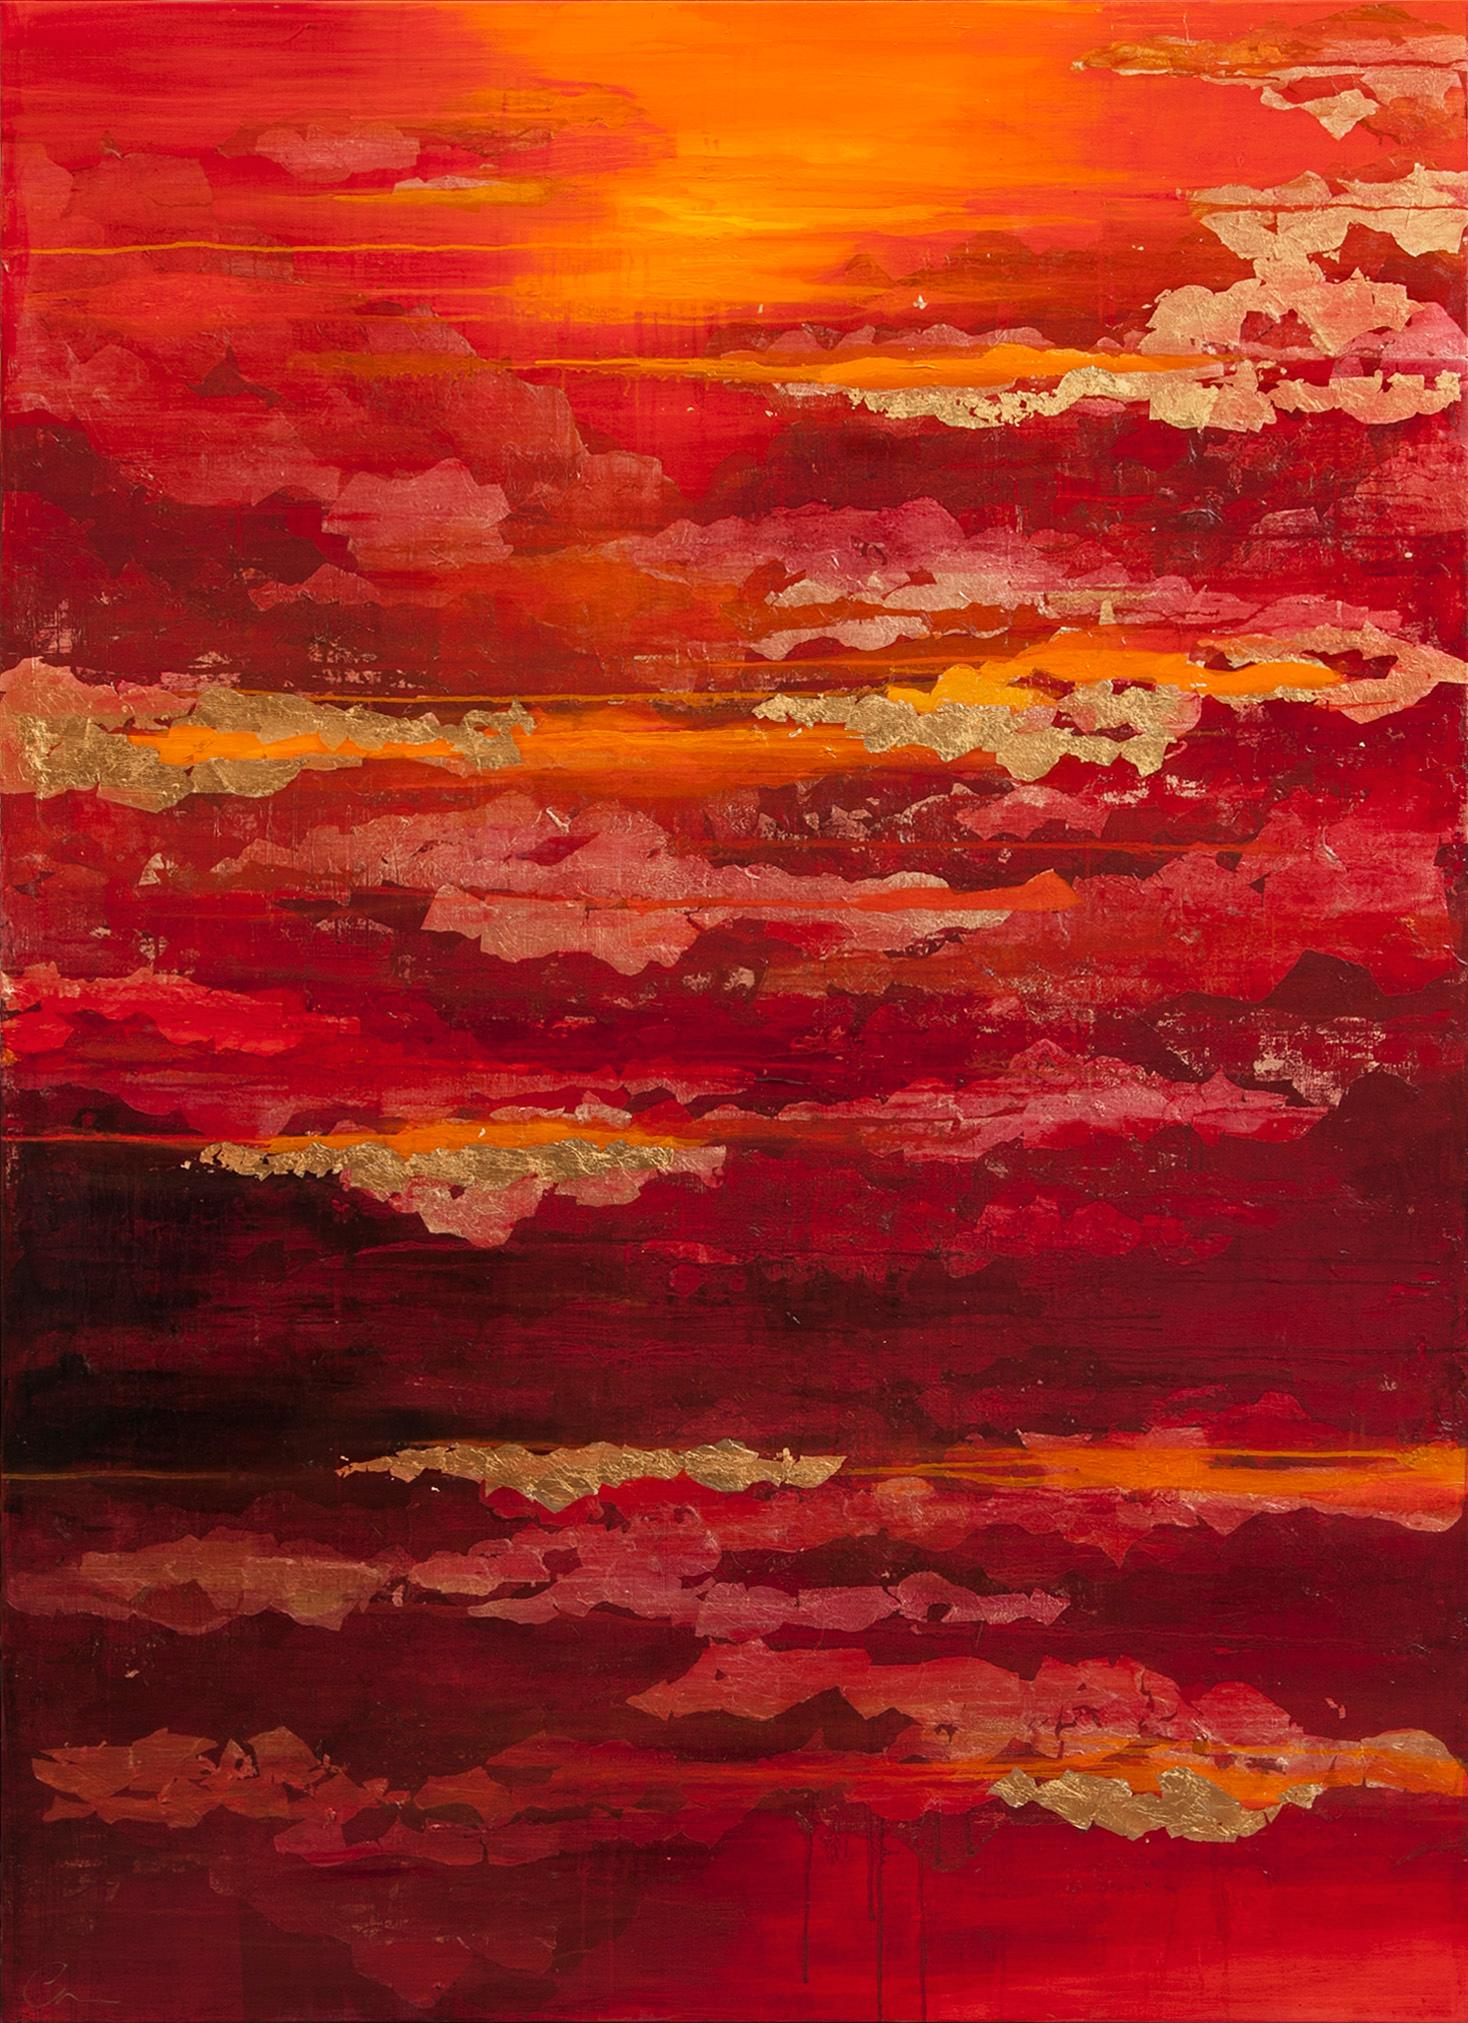 Contemporary Abstract Painting Chelsea Davine Fading Light 21st Century Contemporary Abstract Painting Mixed Media Canvas